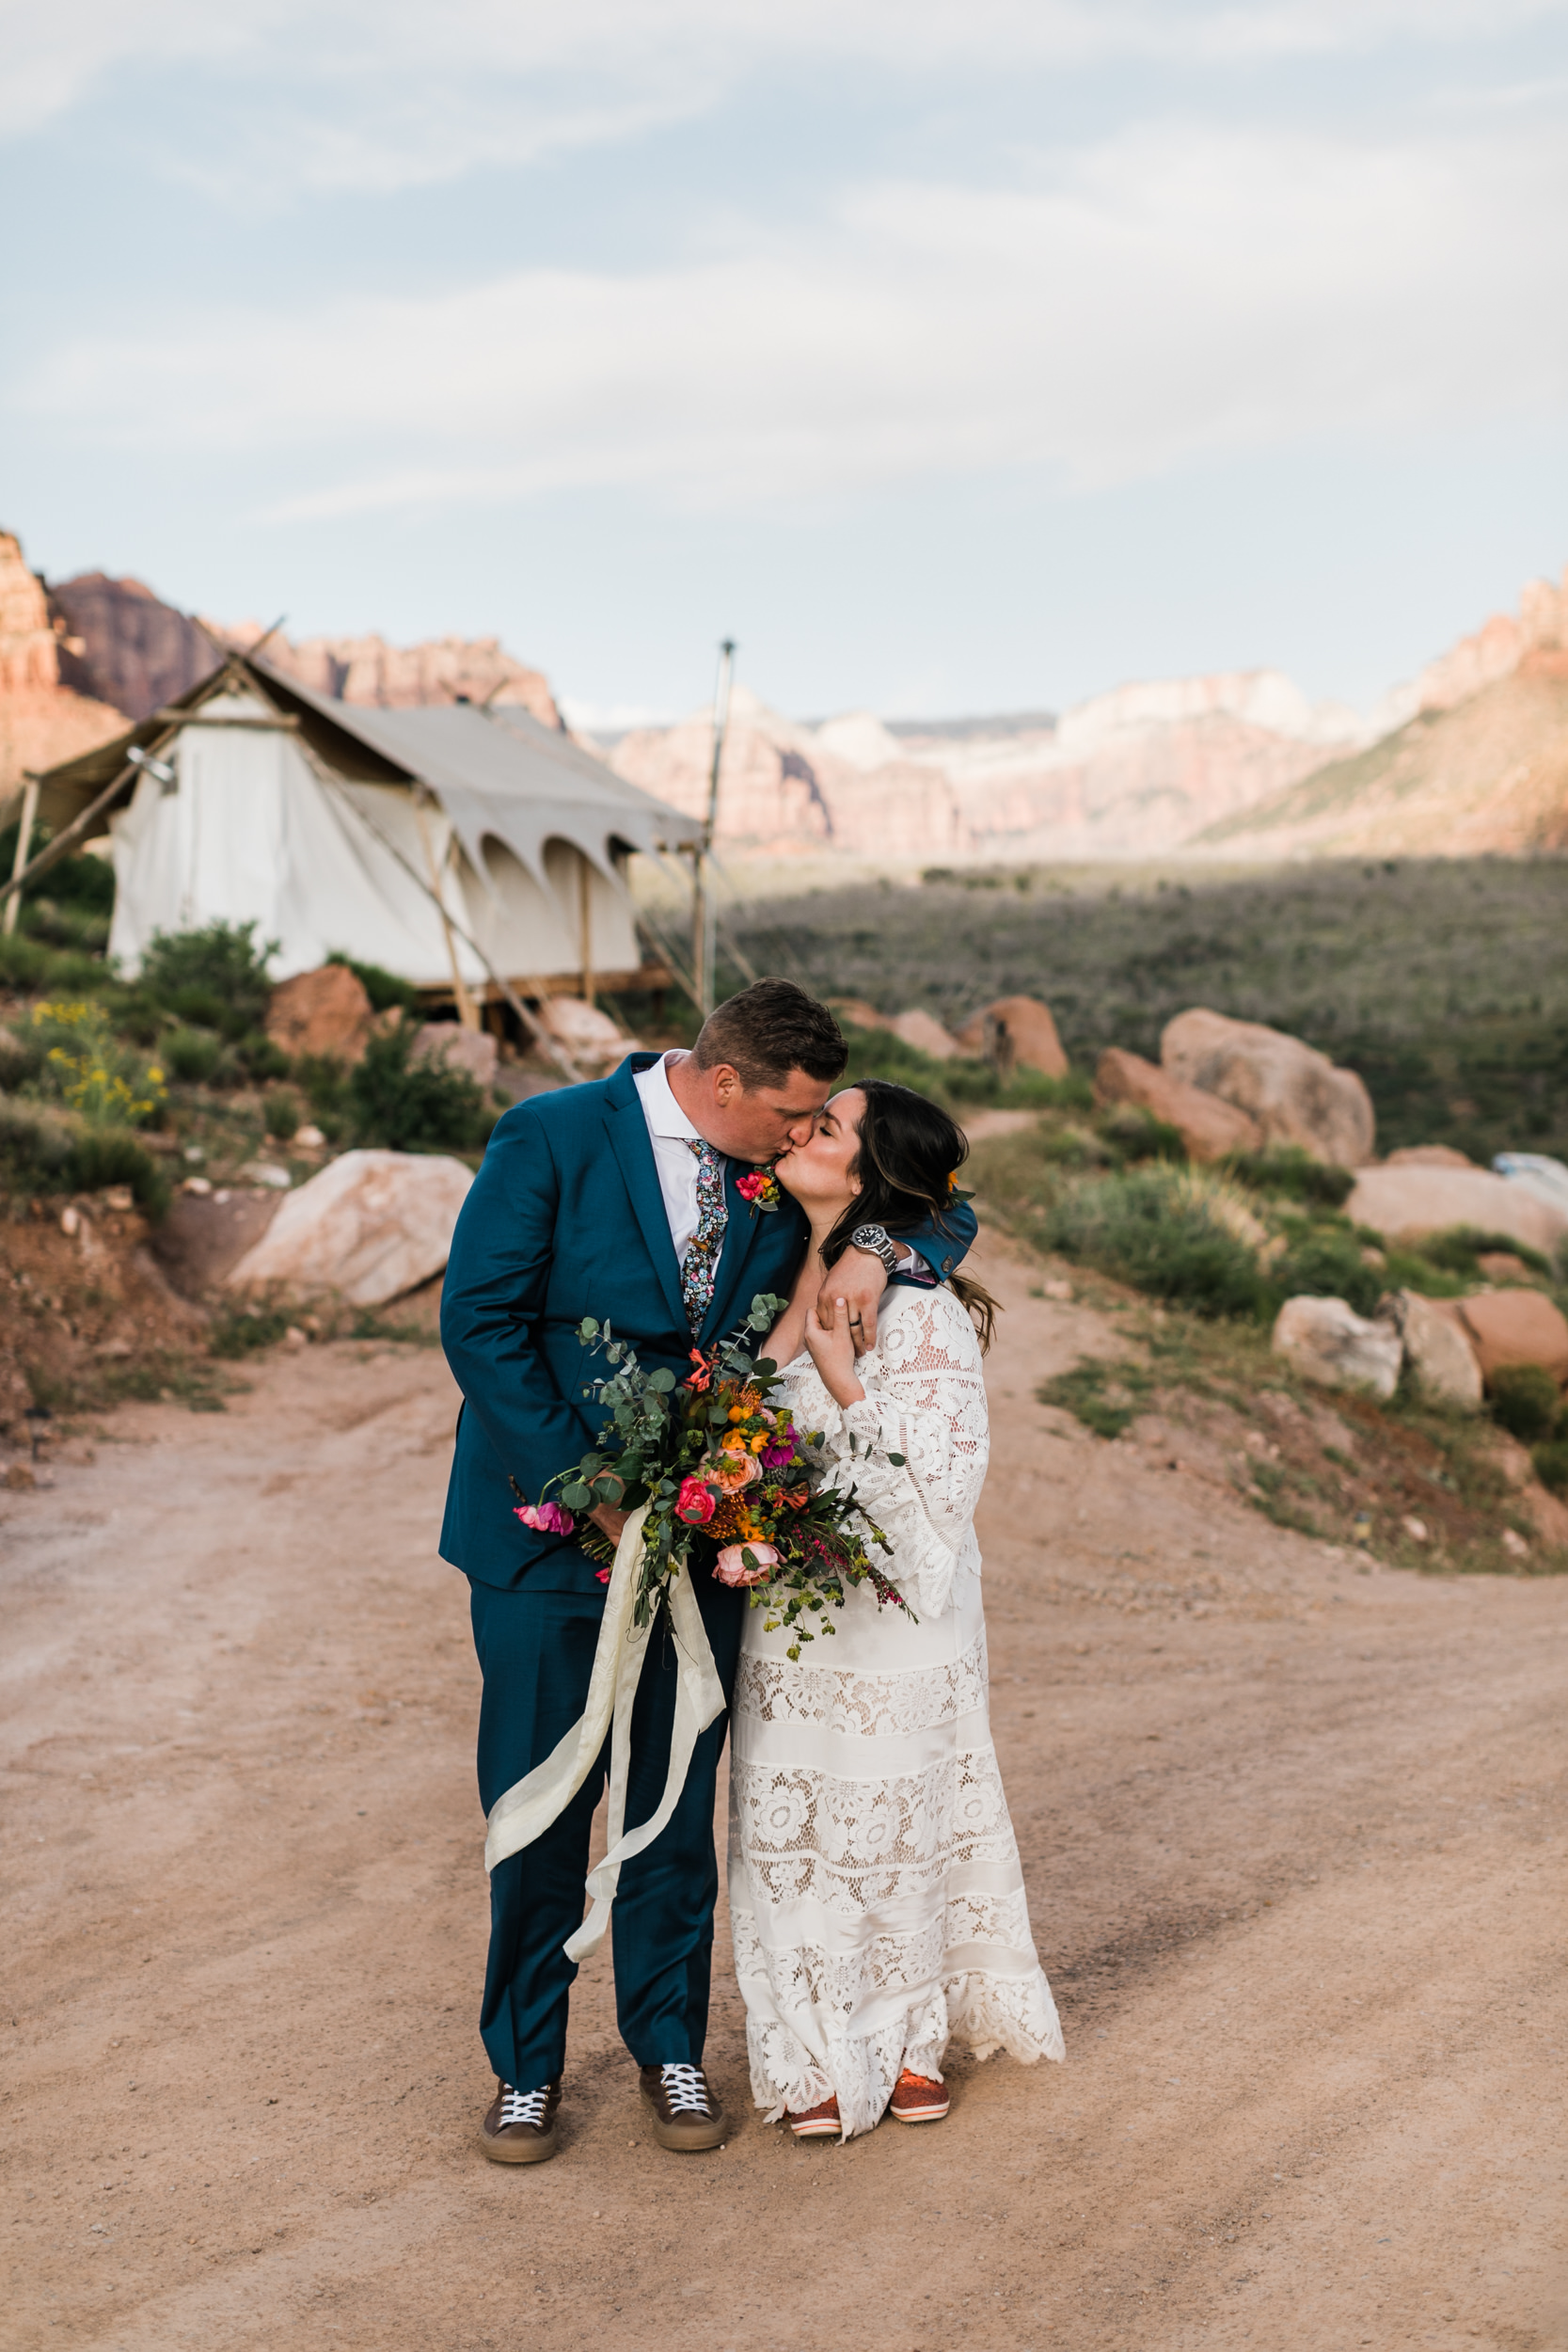 Zion national park elopement photographer | under canvas wedding | the hearnes adventure photography